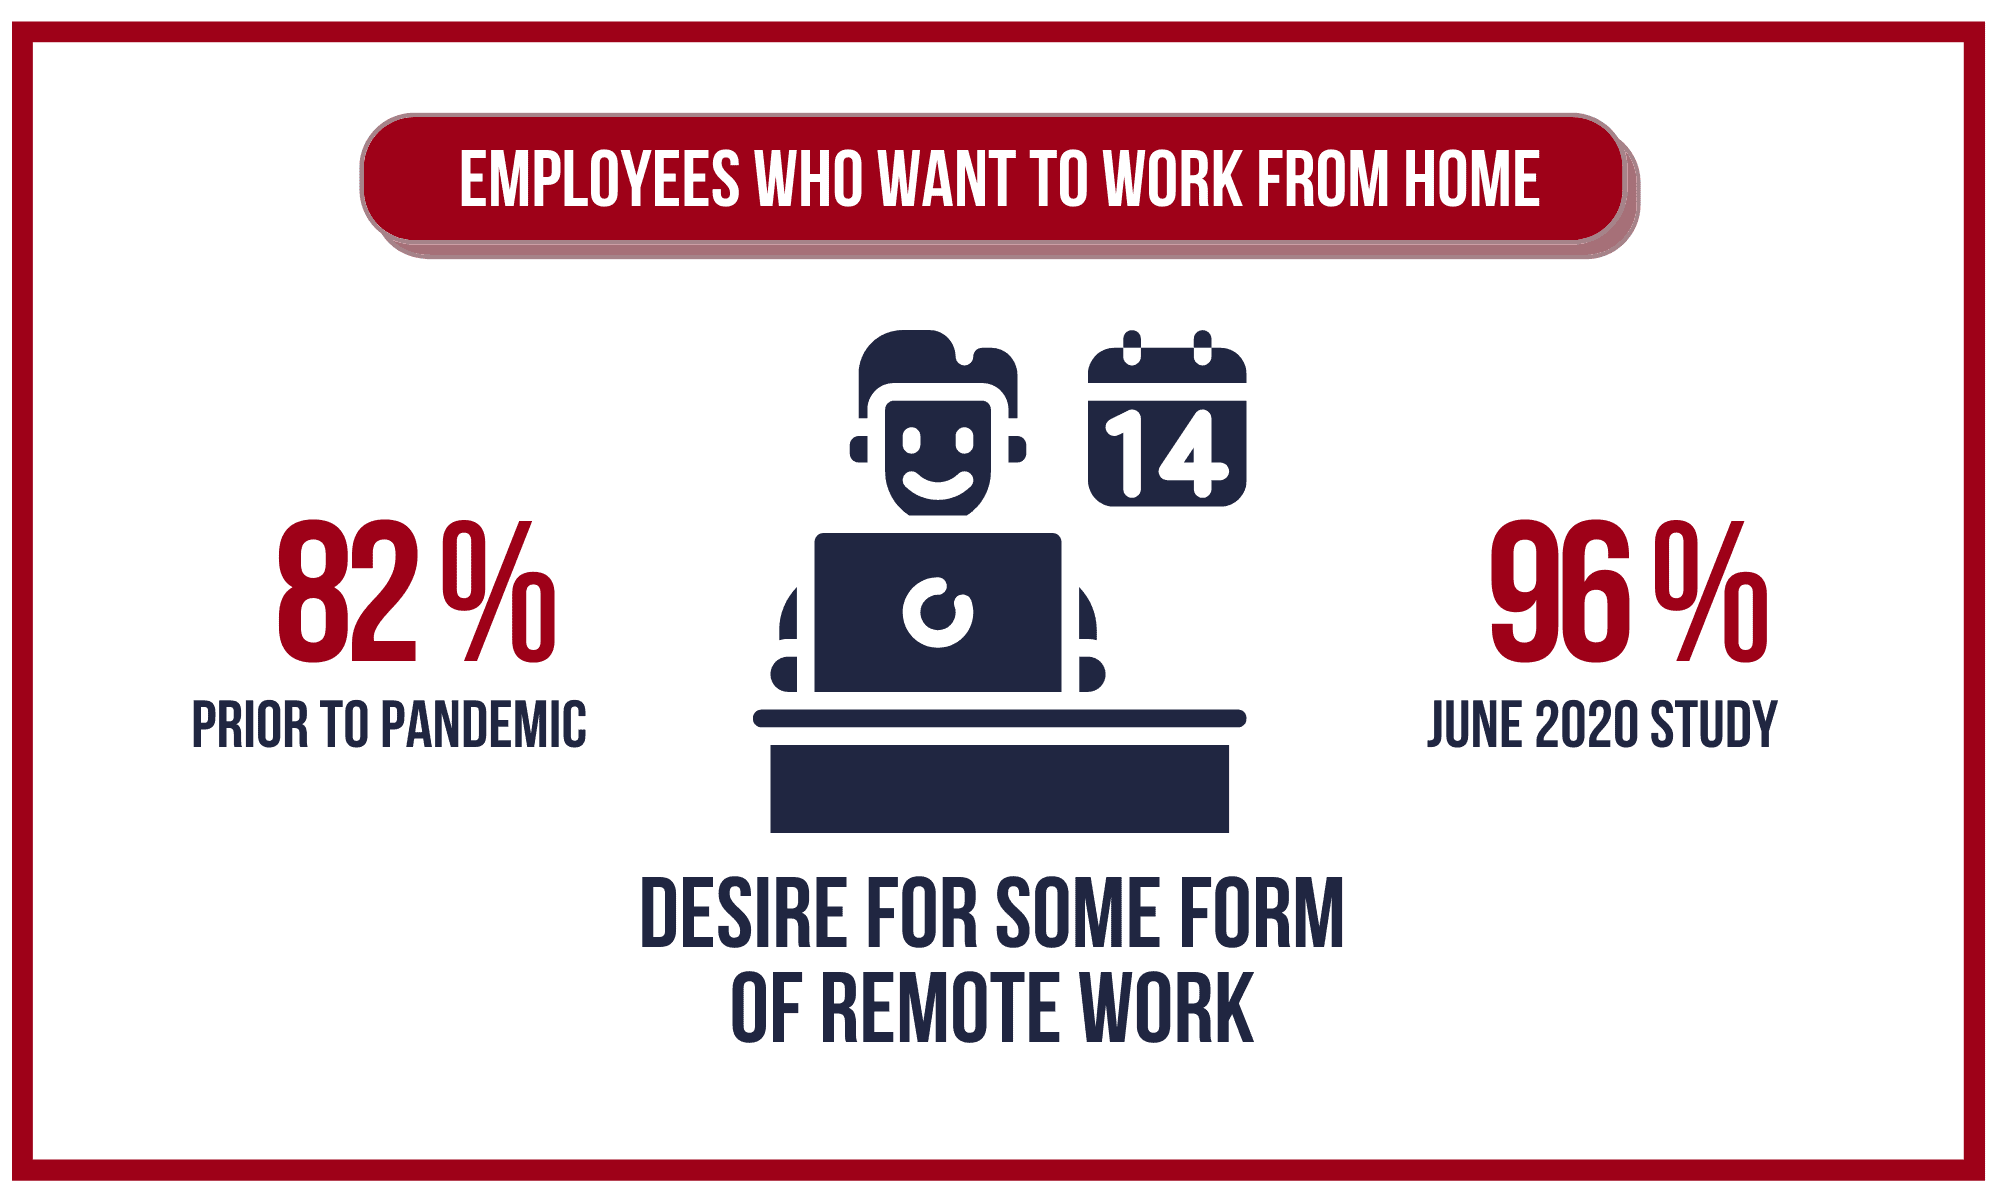 Employees who want to work from home.